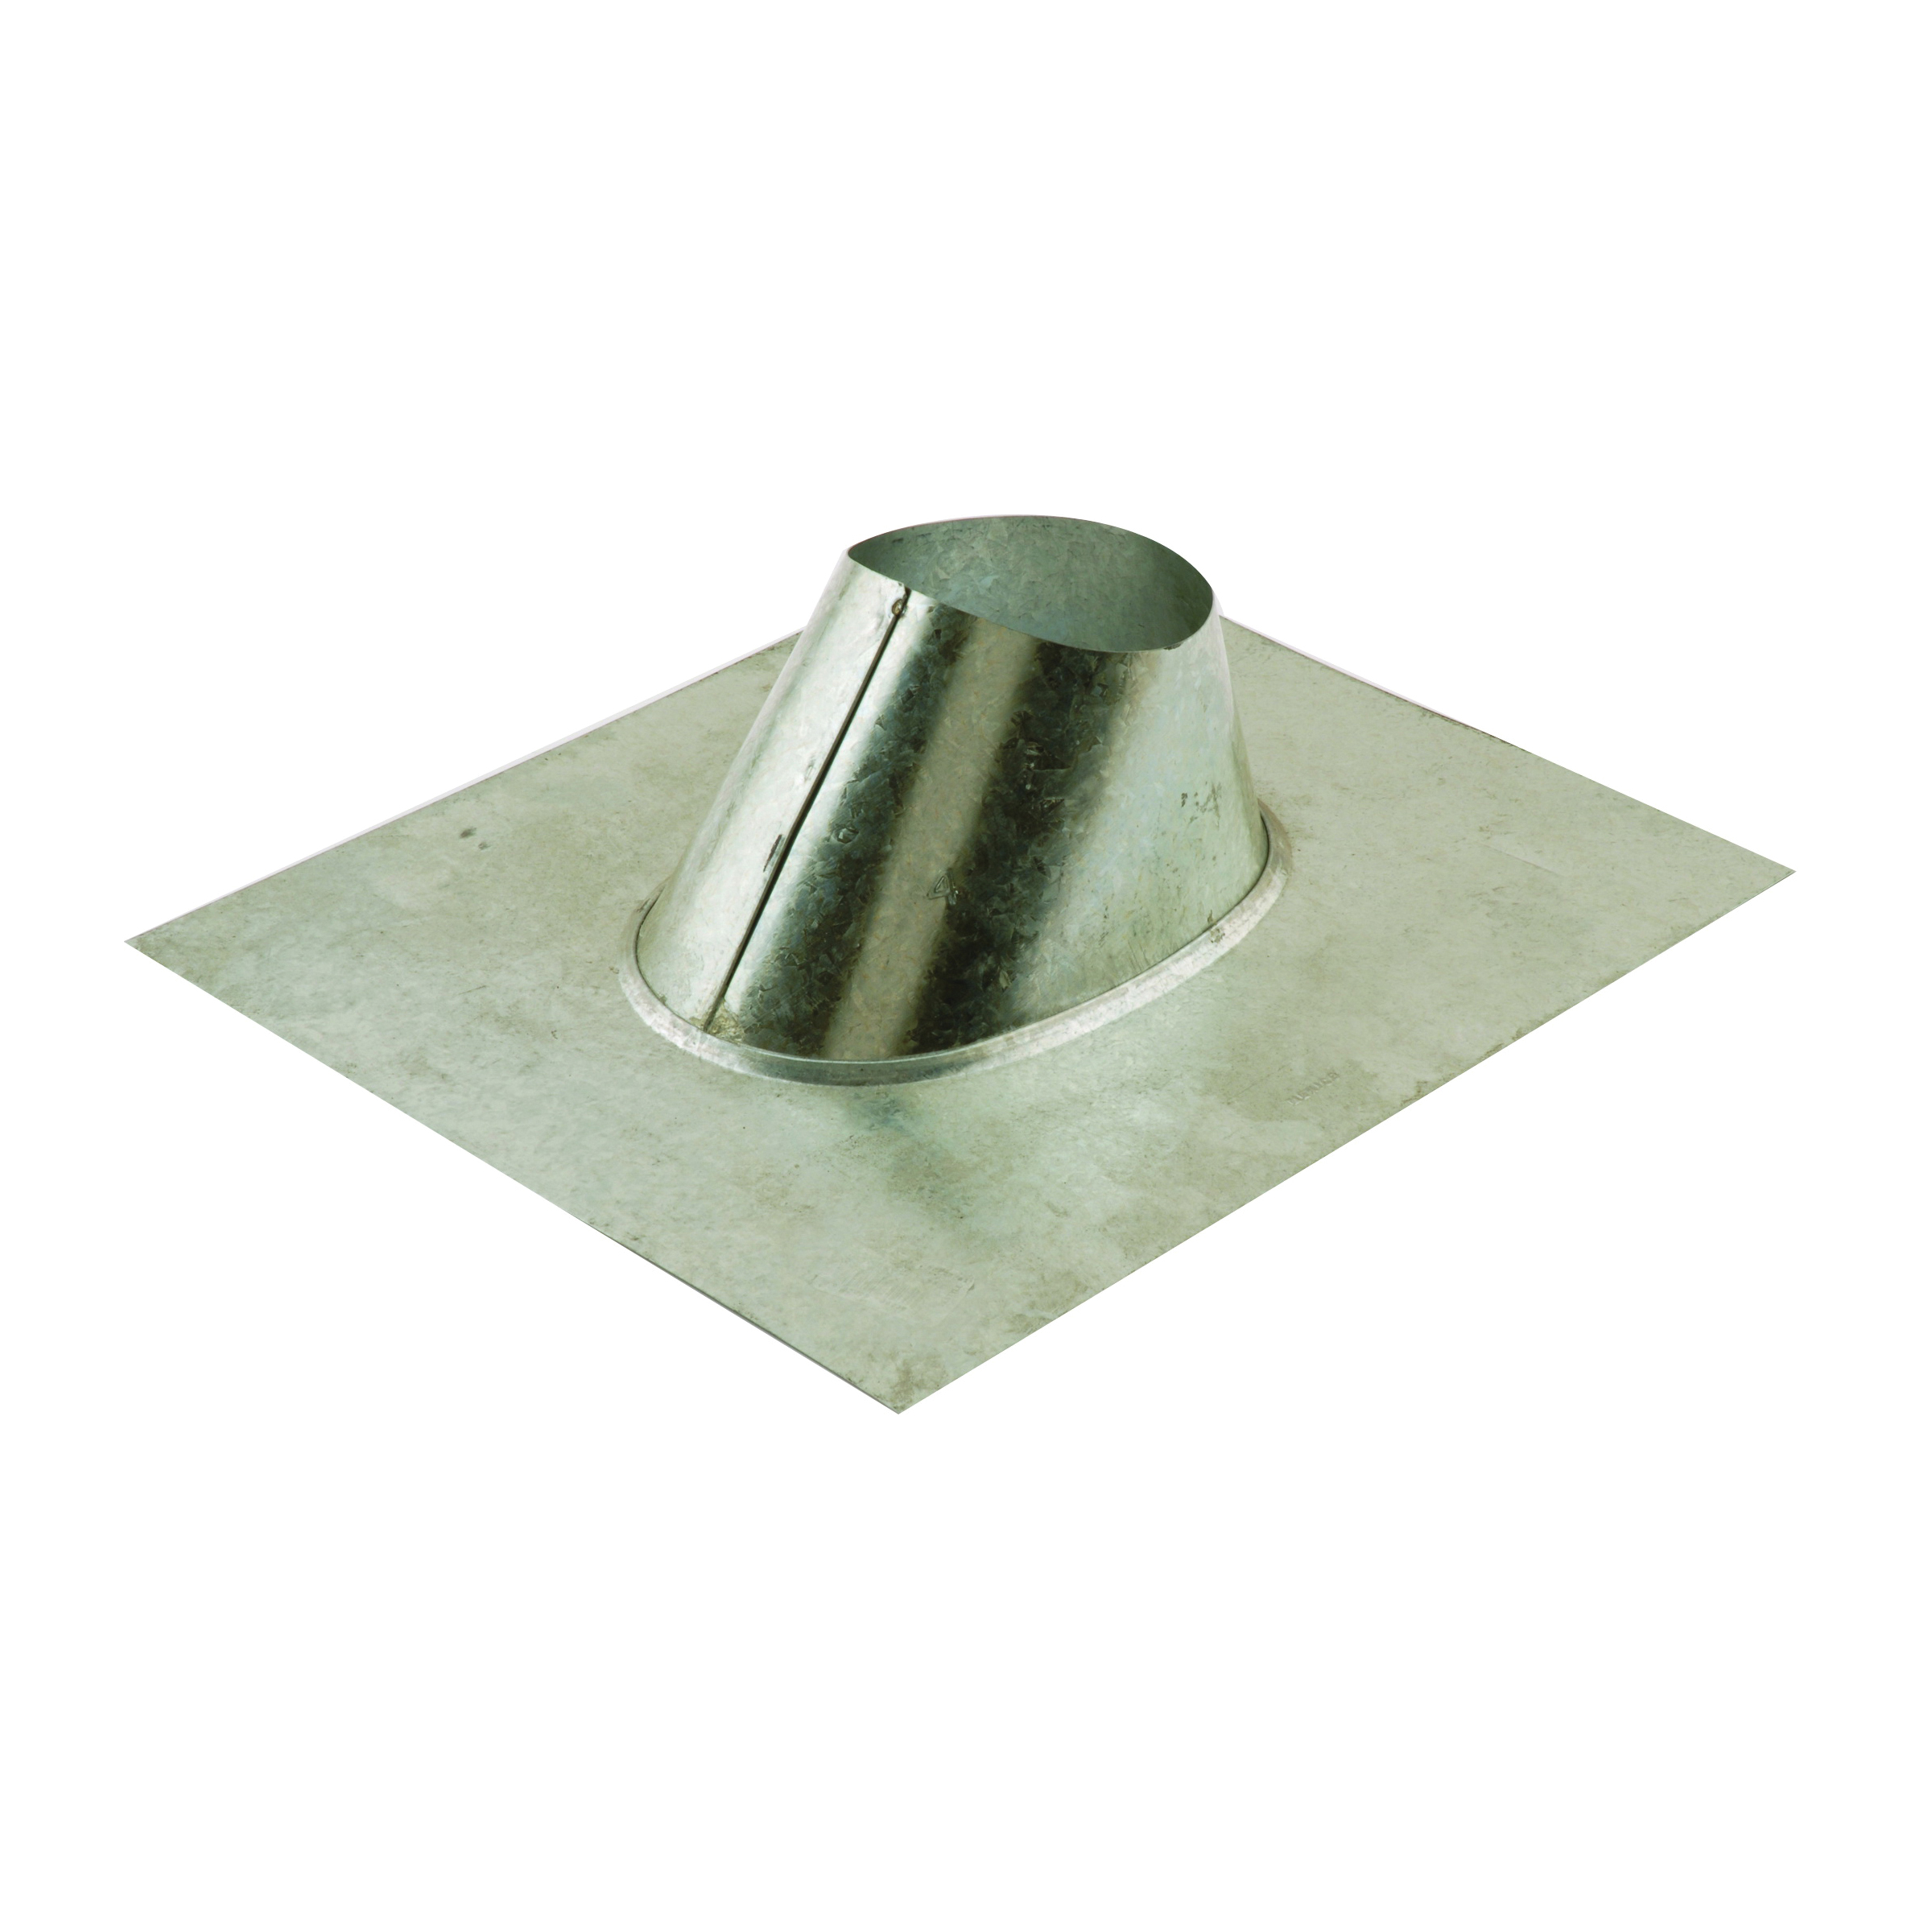 Picture of AmeriVent 6EF Roof Vent Flashing, 18-3/4 in OAL, 16-1/8 in OAW, Steel